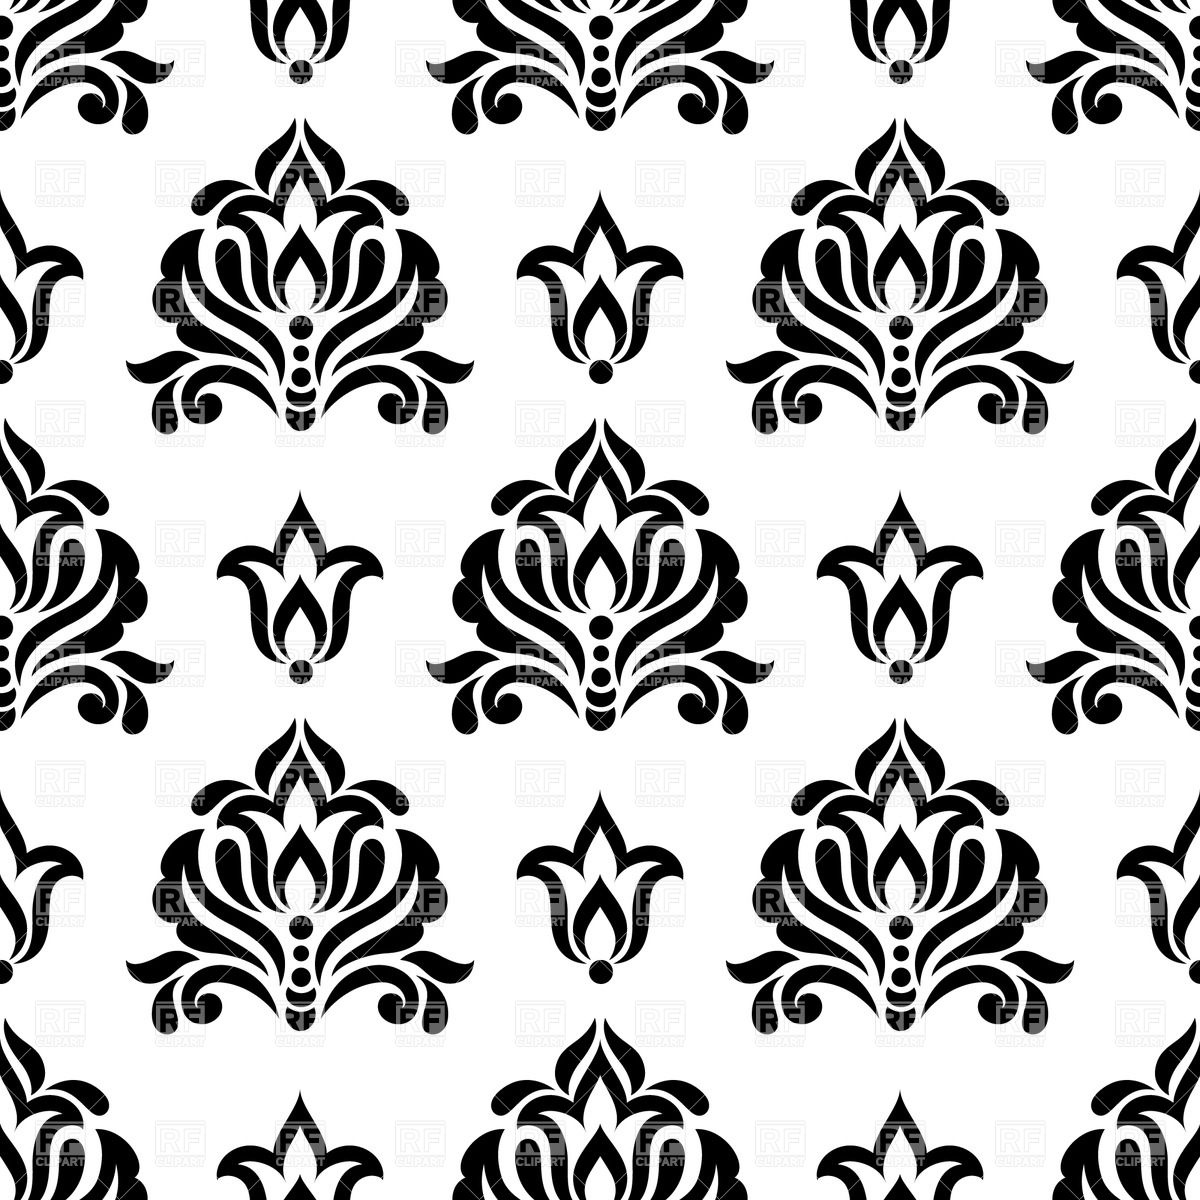 Free Flame Stencils Printable Download Free Clip Art